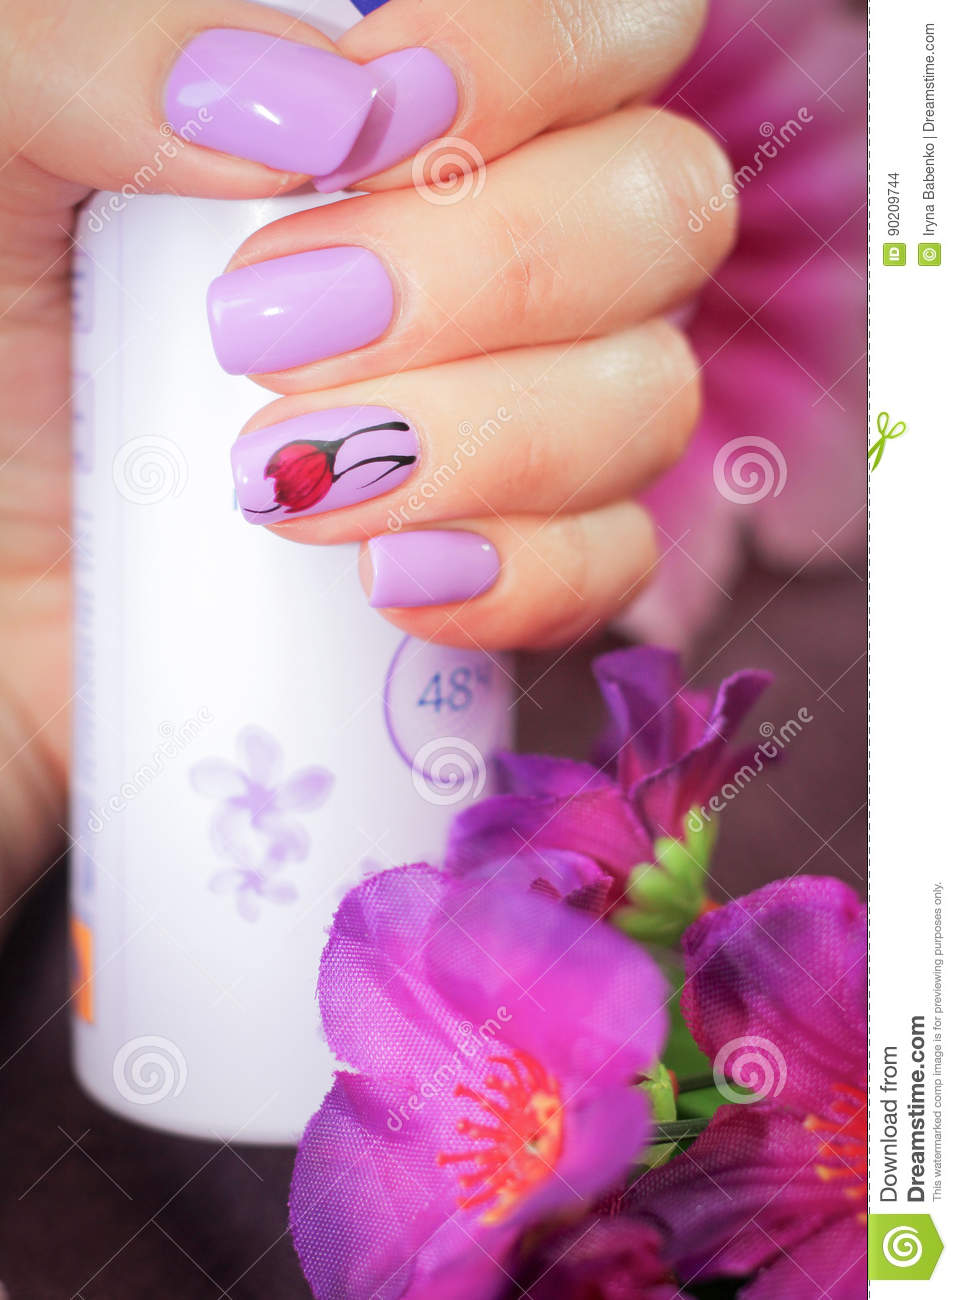 The Design Of Nails Spring Style In Hand A Can Of Deodorant Stock